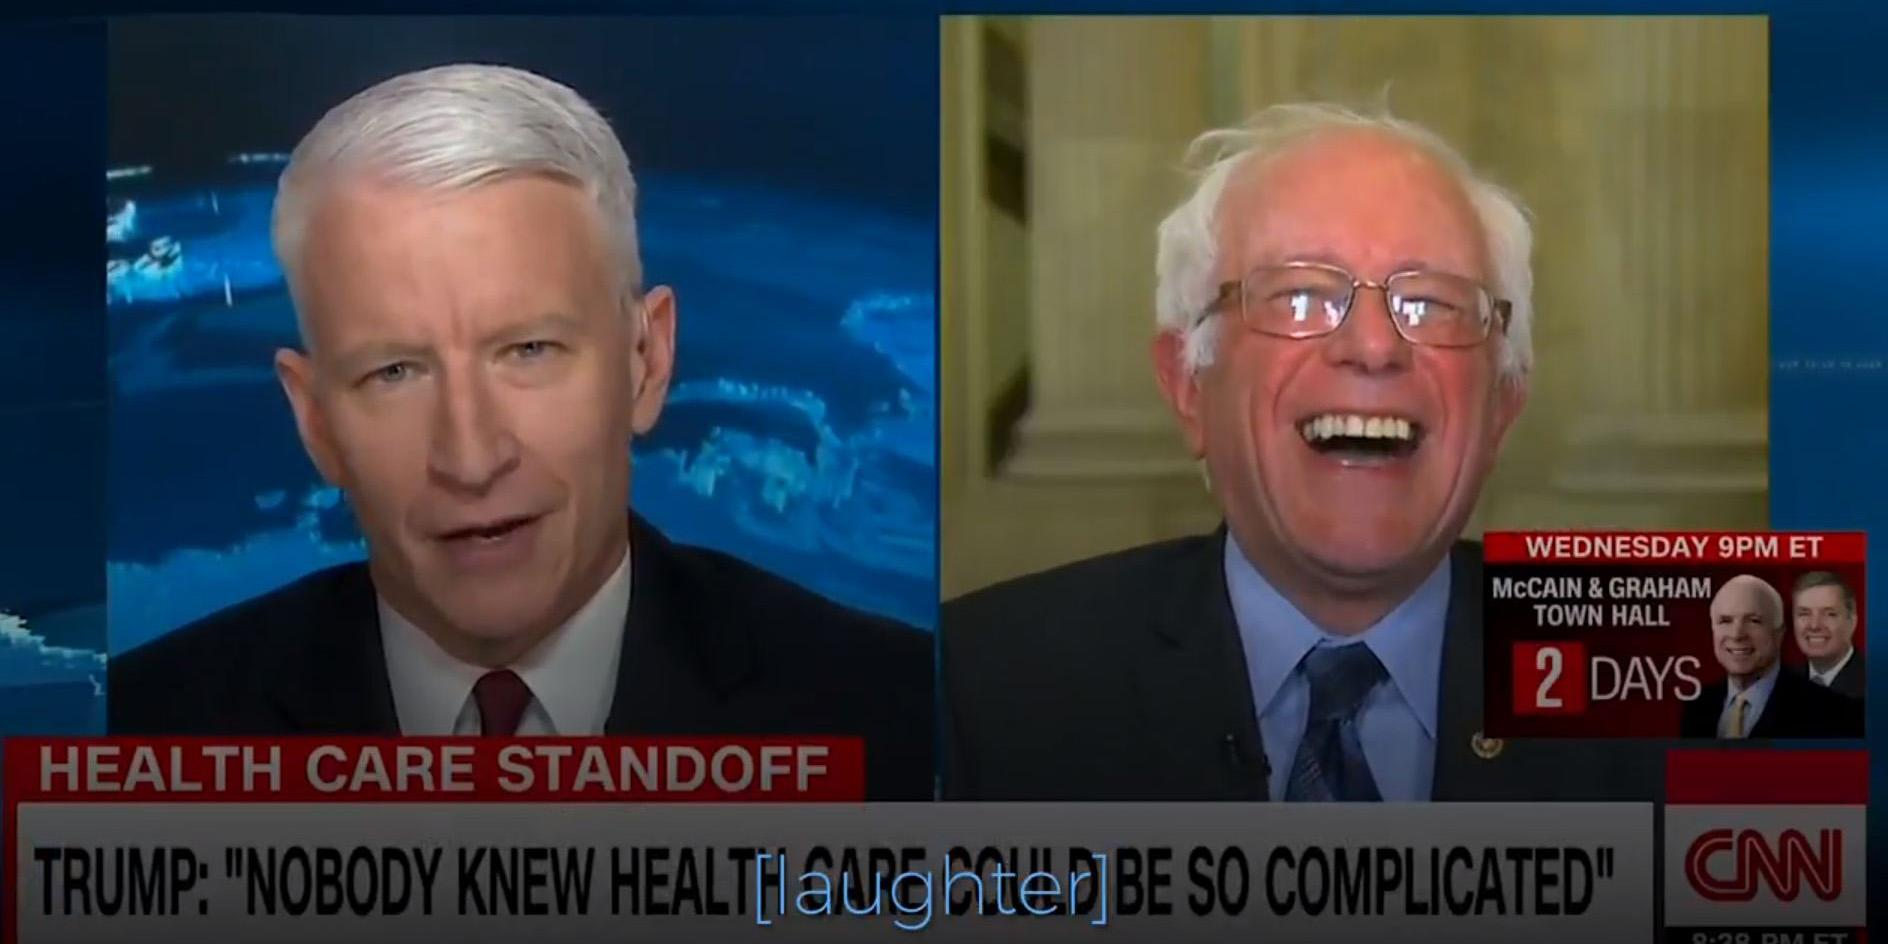 Affordable Health Insurance >> This Bernie Sanders moment is the greatest healthcare meme of all time | indy100